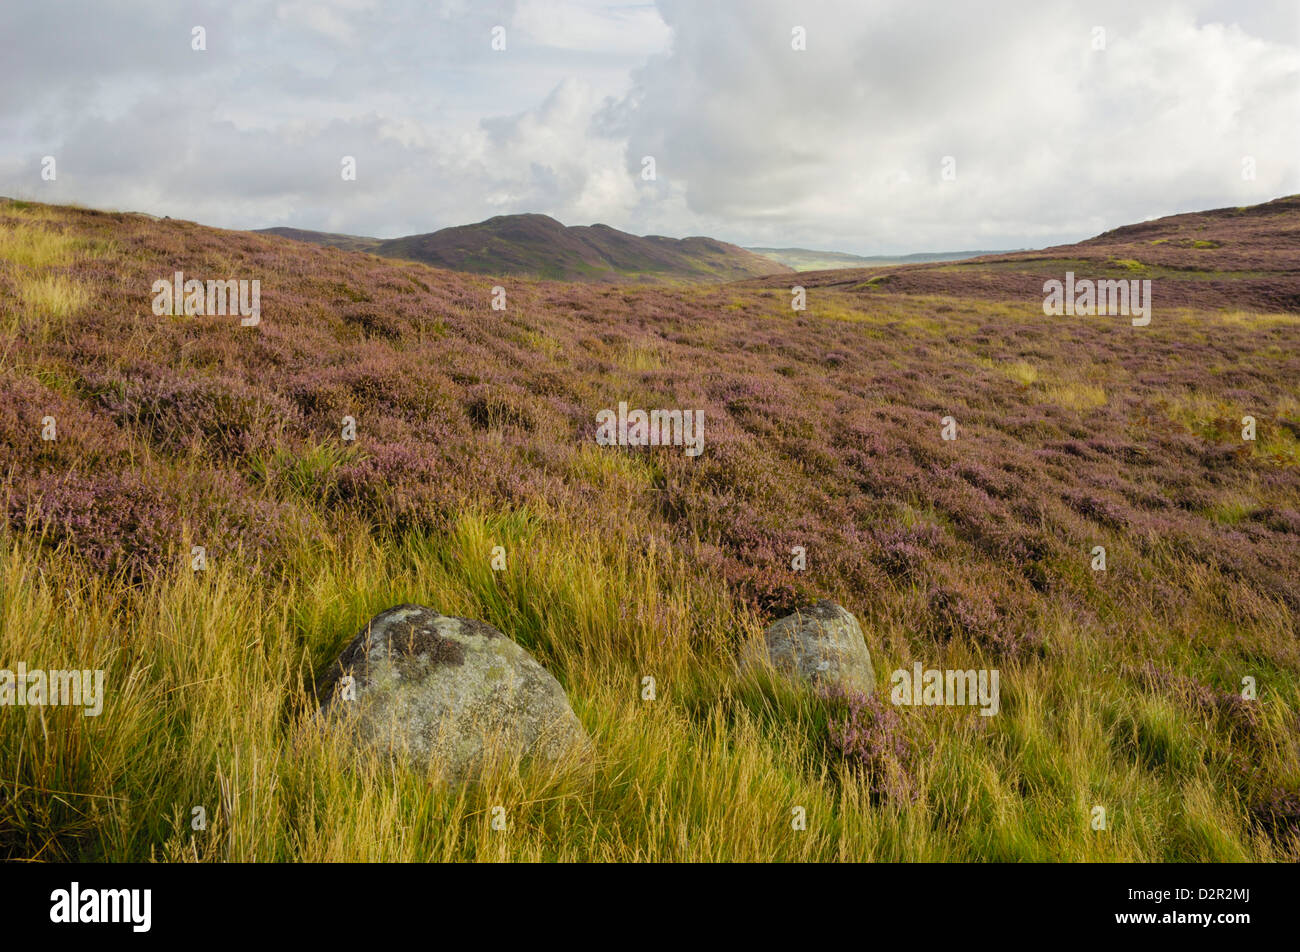 Heather on the Galloway Hills, Castramont Hill looking towards Craig of Grobdale, Dumfries and Galloway, Scotland, - Stock Image